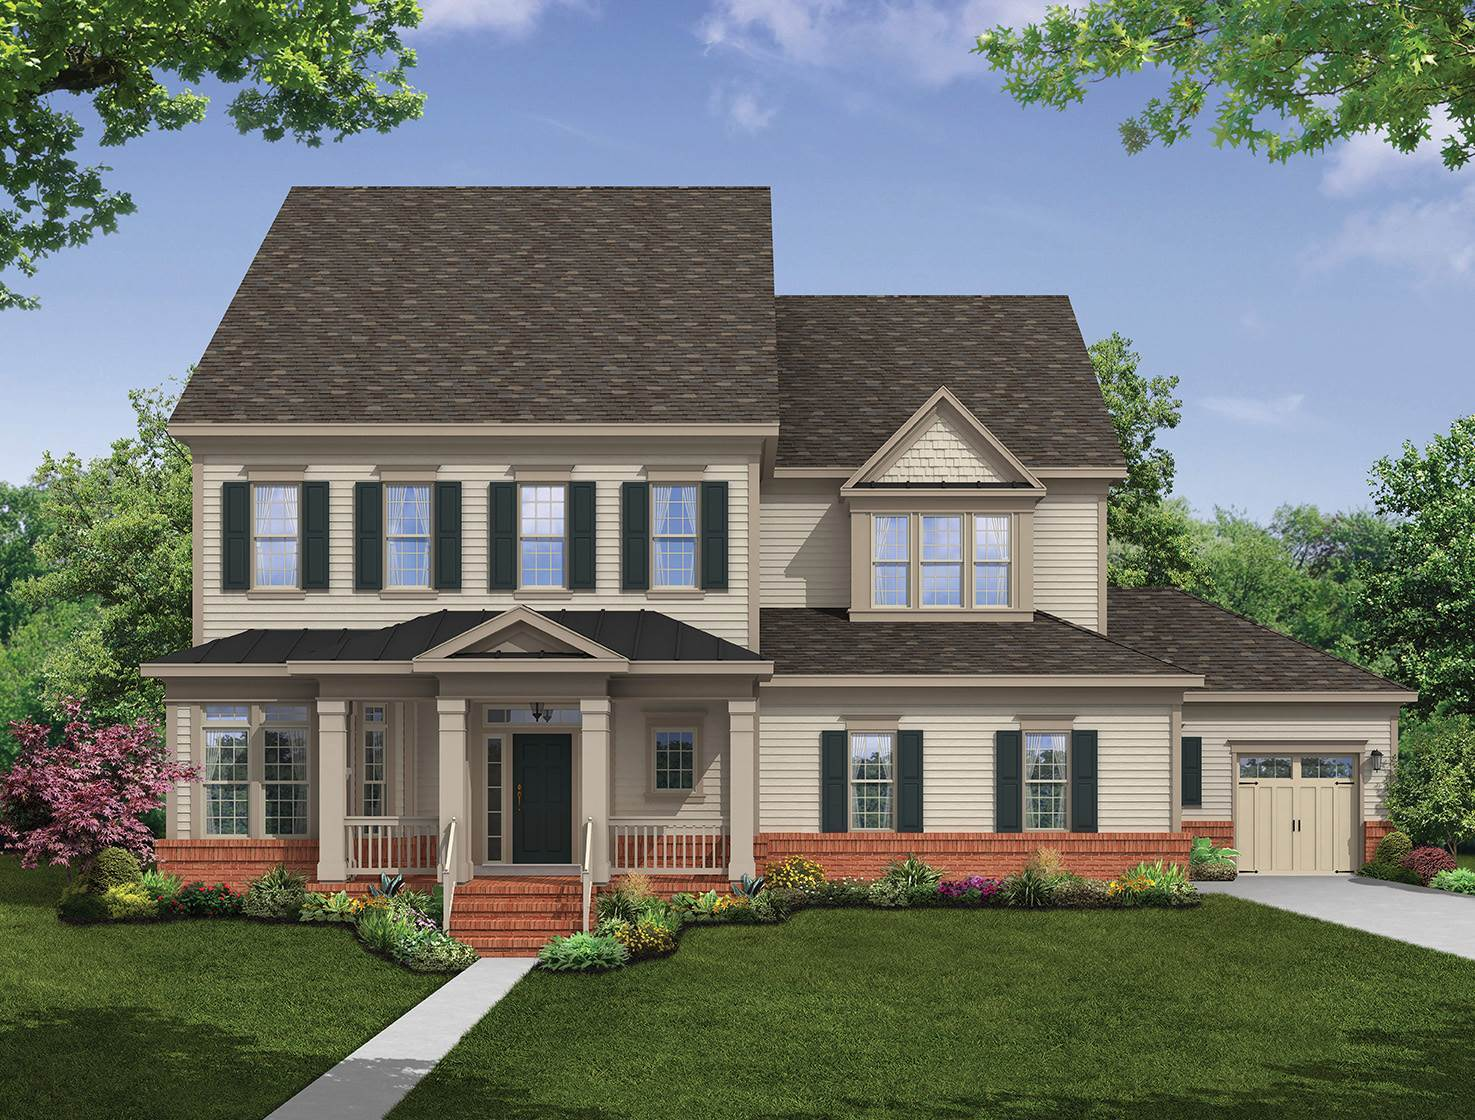 Single Family for Sale at The Woodlands - Hawthorne Ii 5620 Dosa Court Clarksville, Maryland 21029 United States